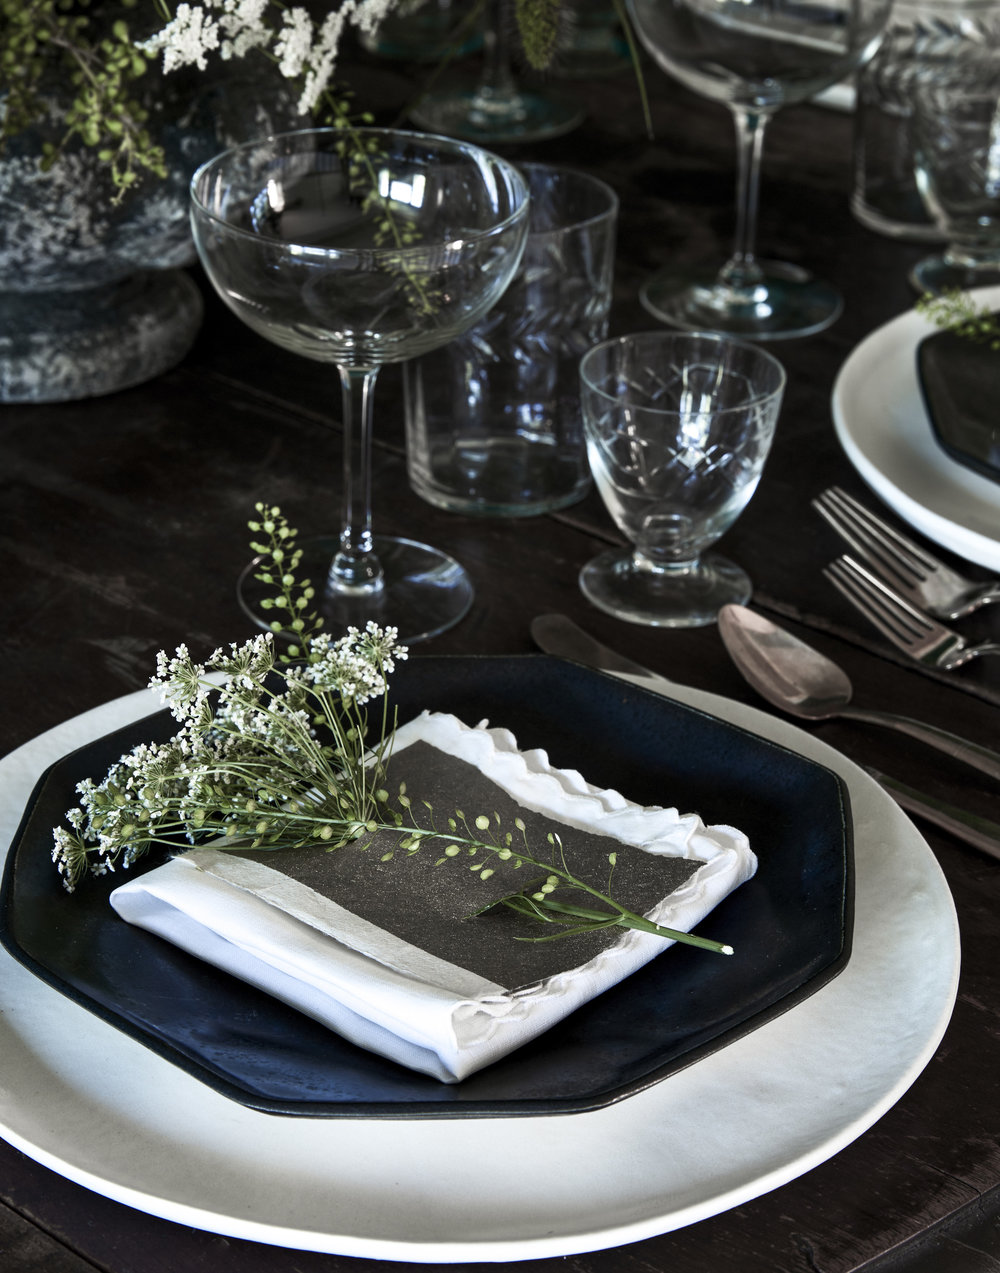 TASTEMAKERS TABLE - DBO Home Social Content